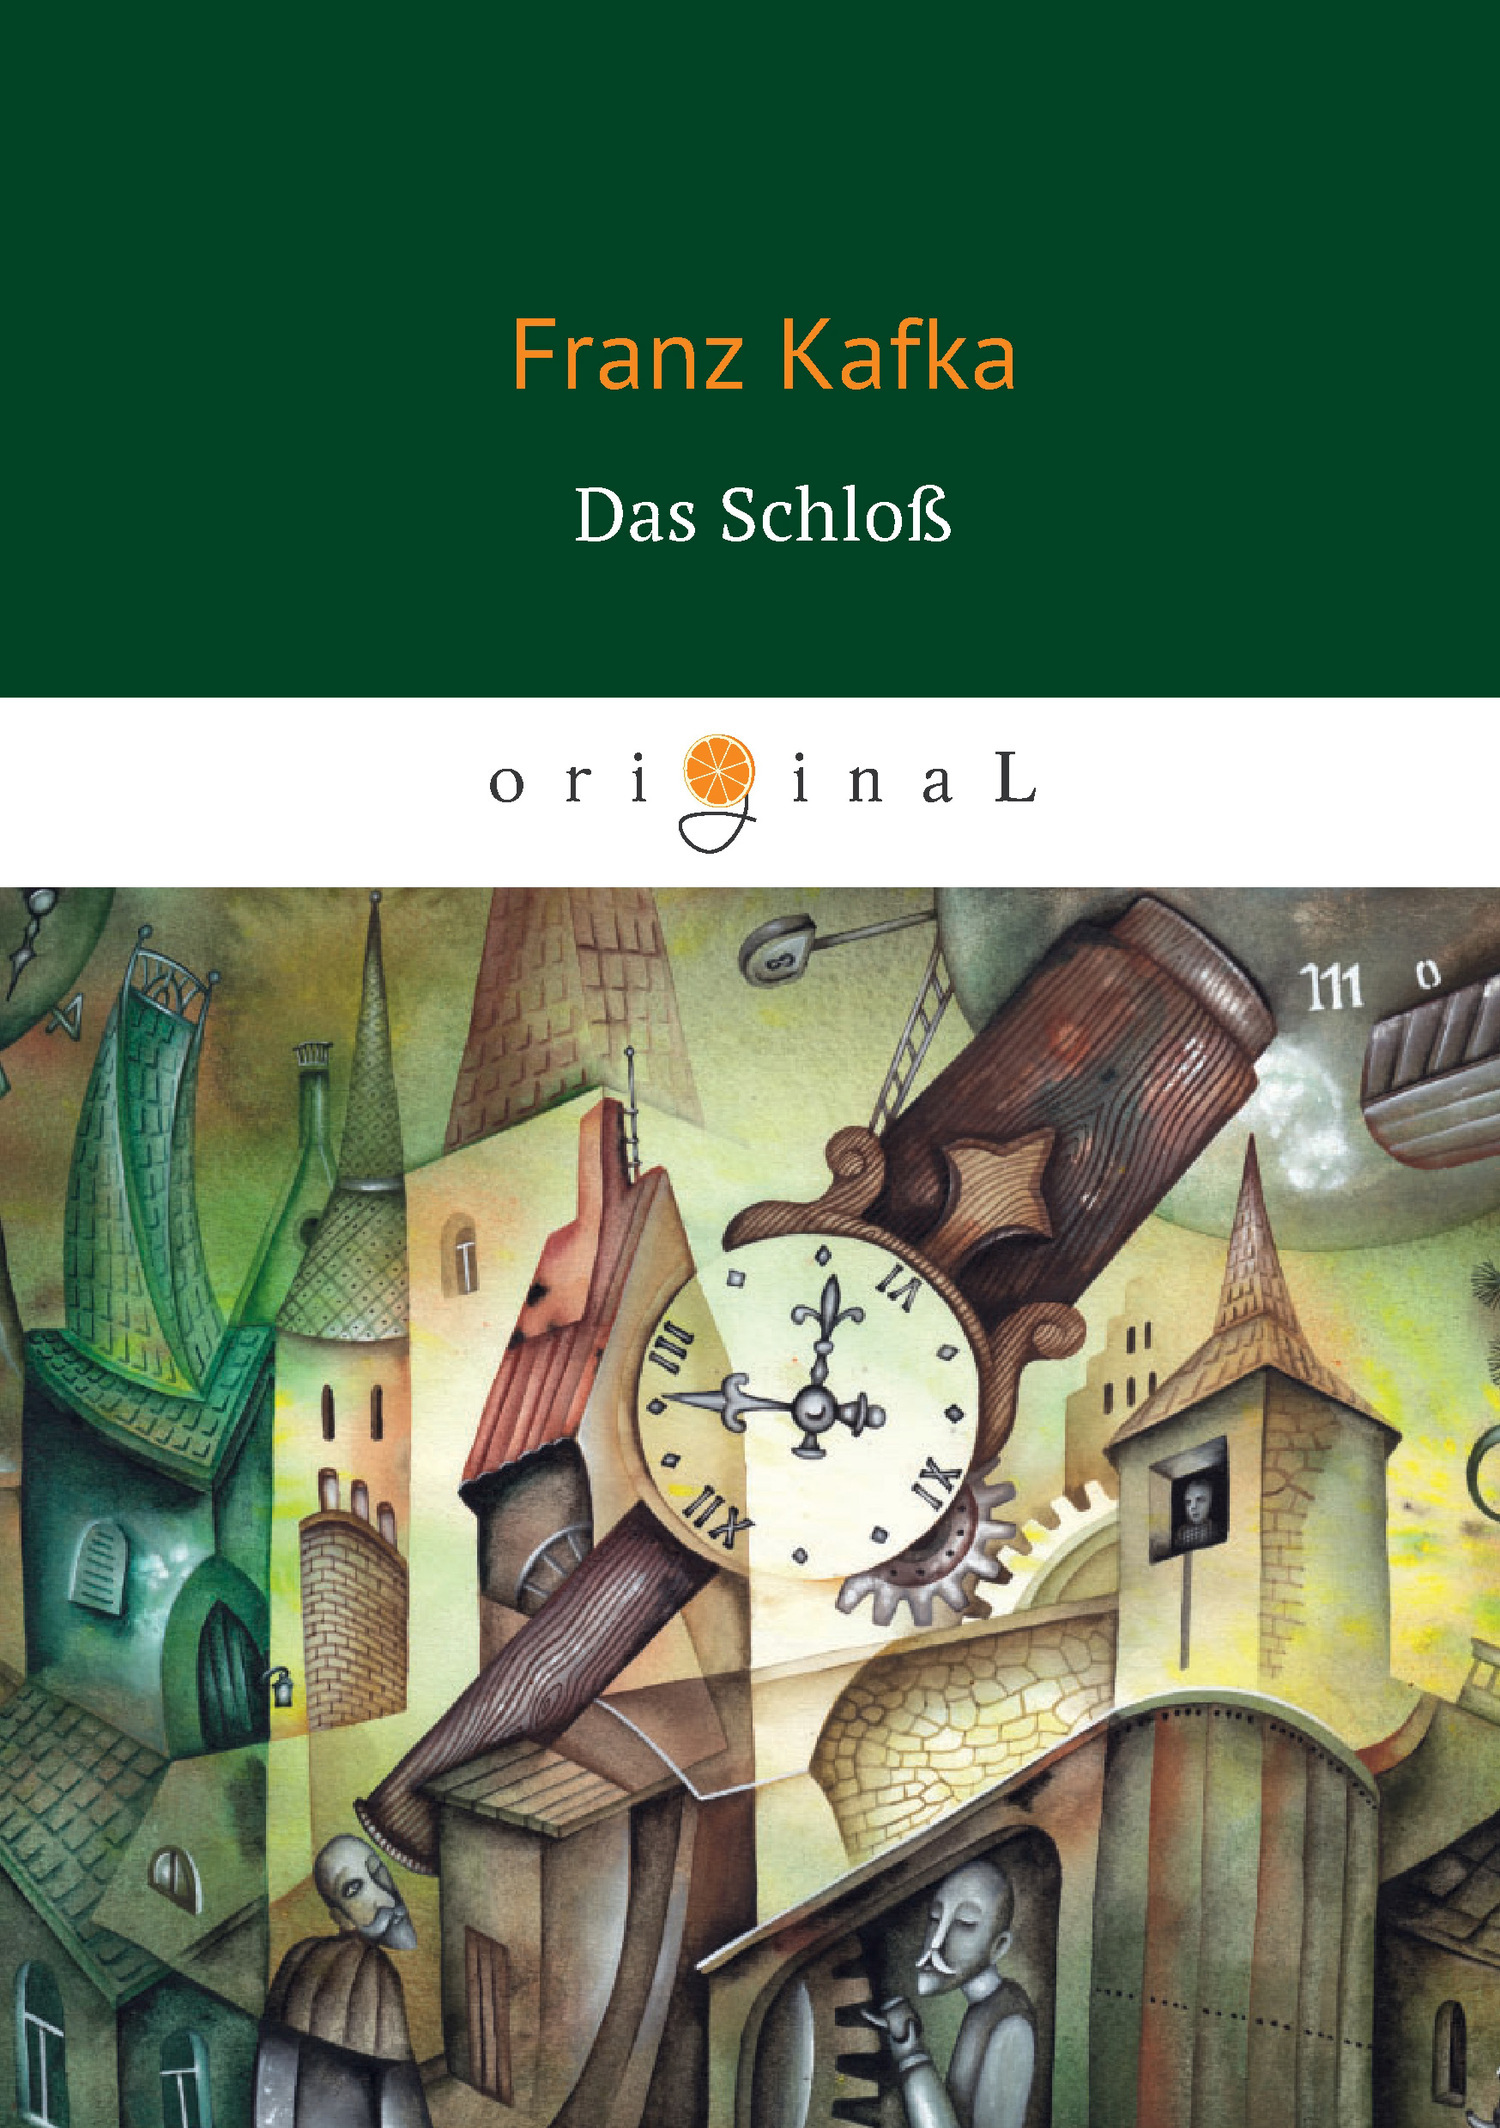 Франц Кафка Das Schloß ISBN: 978-5-521-06152-5 kafka franz the castle